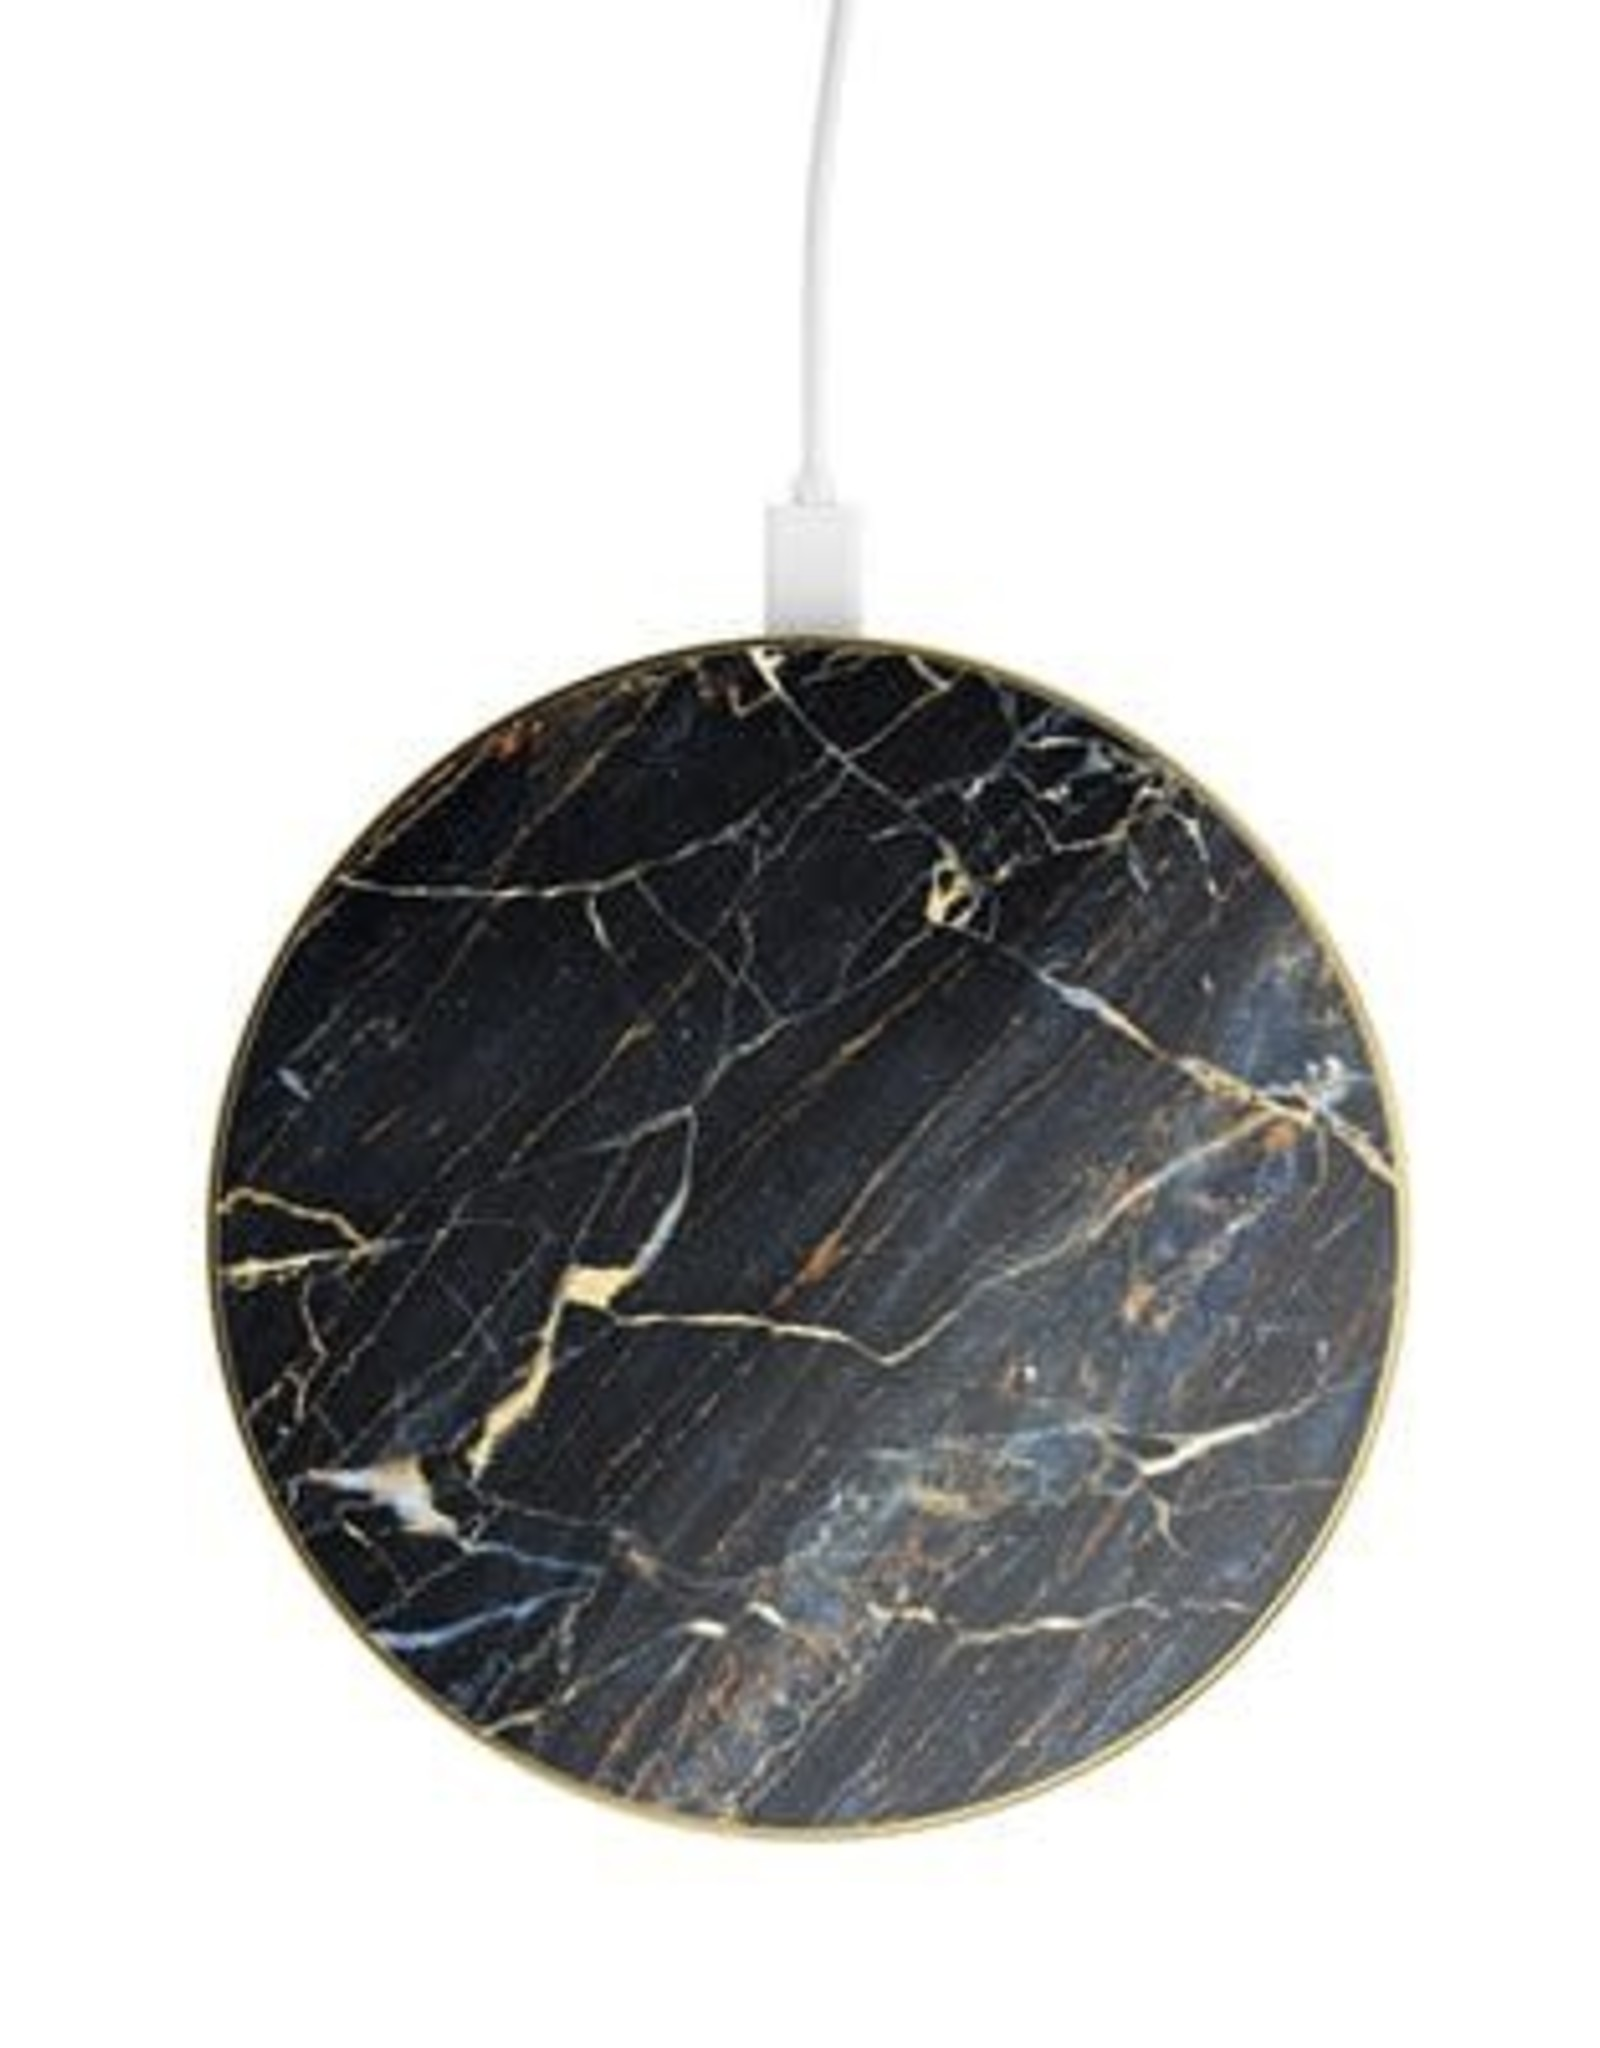 iDeal of Sweden /// Ideal of Sweden | Port Laurent Marble Wireless Charger 10W IDFQILAUR